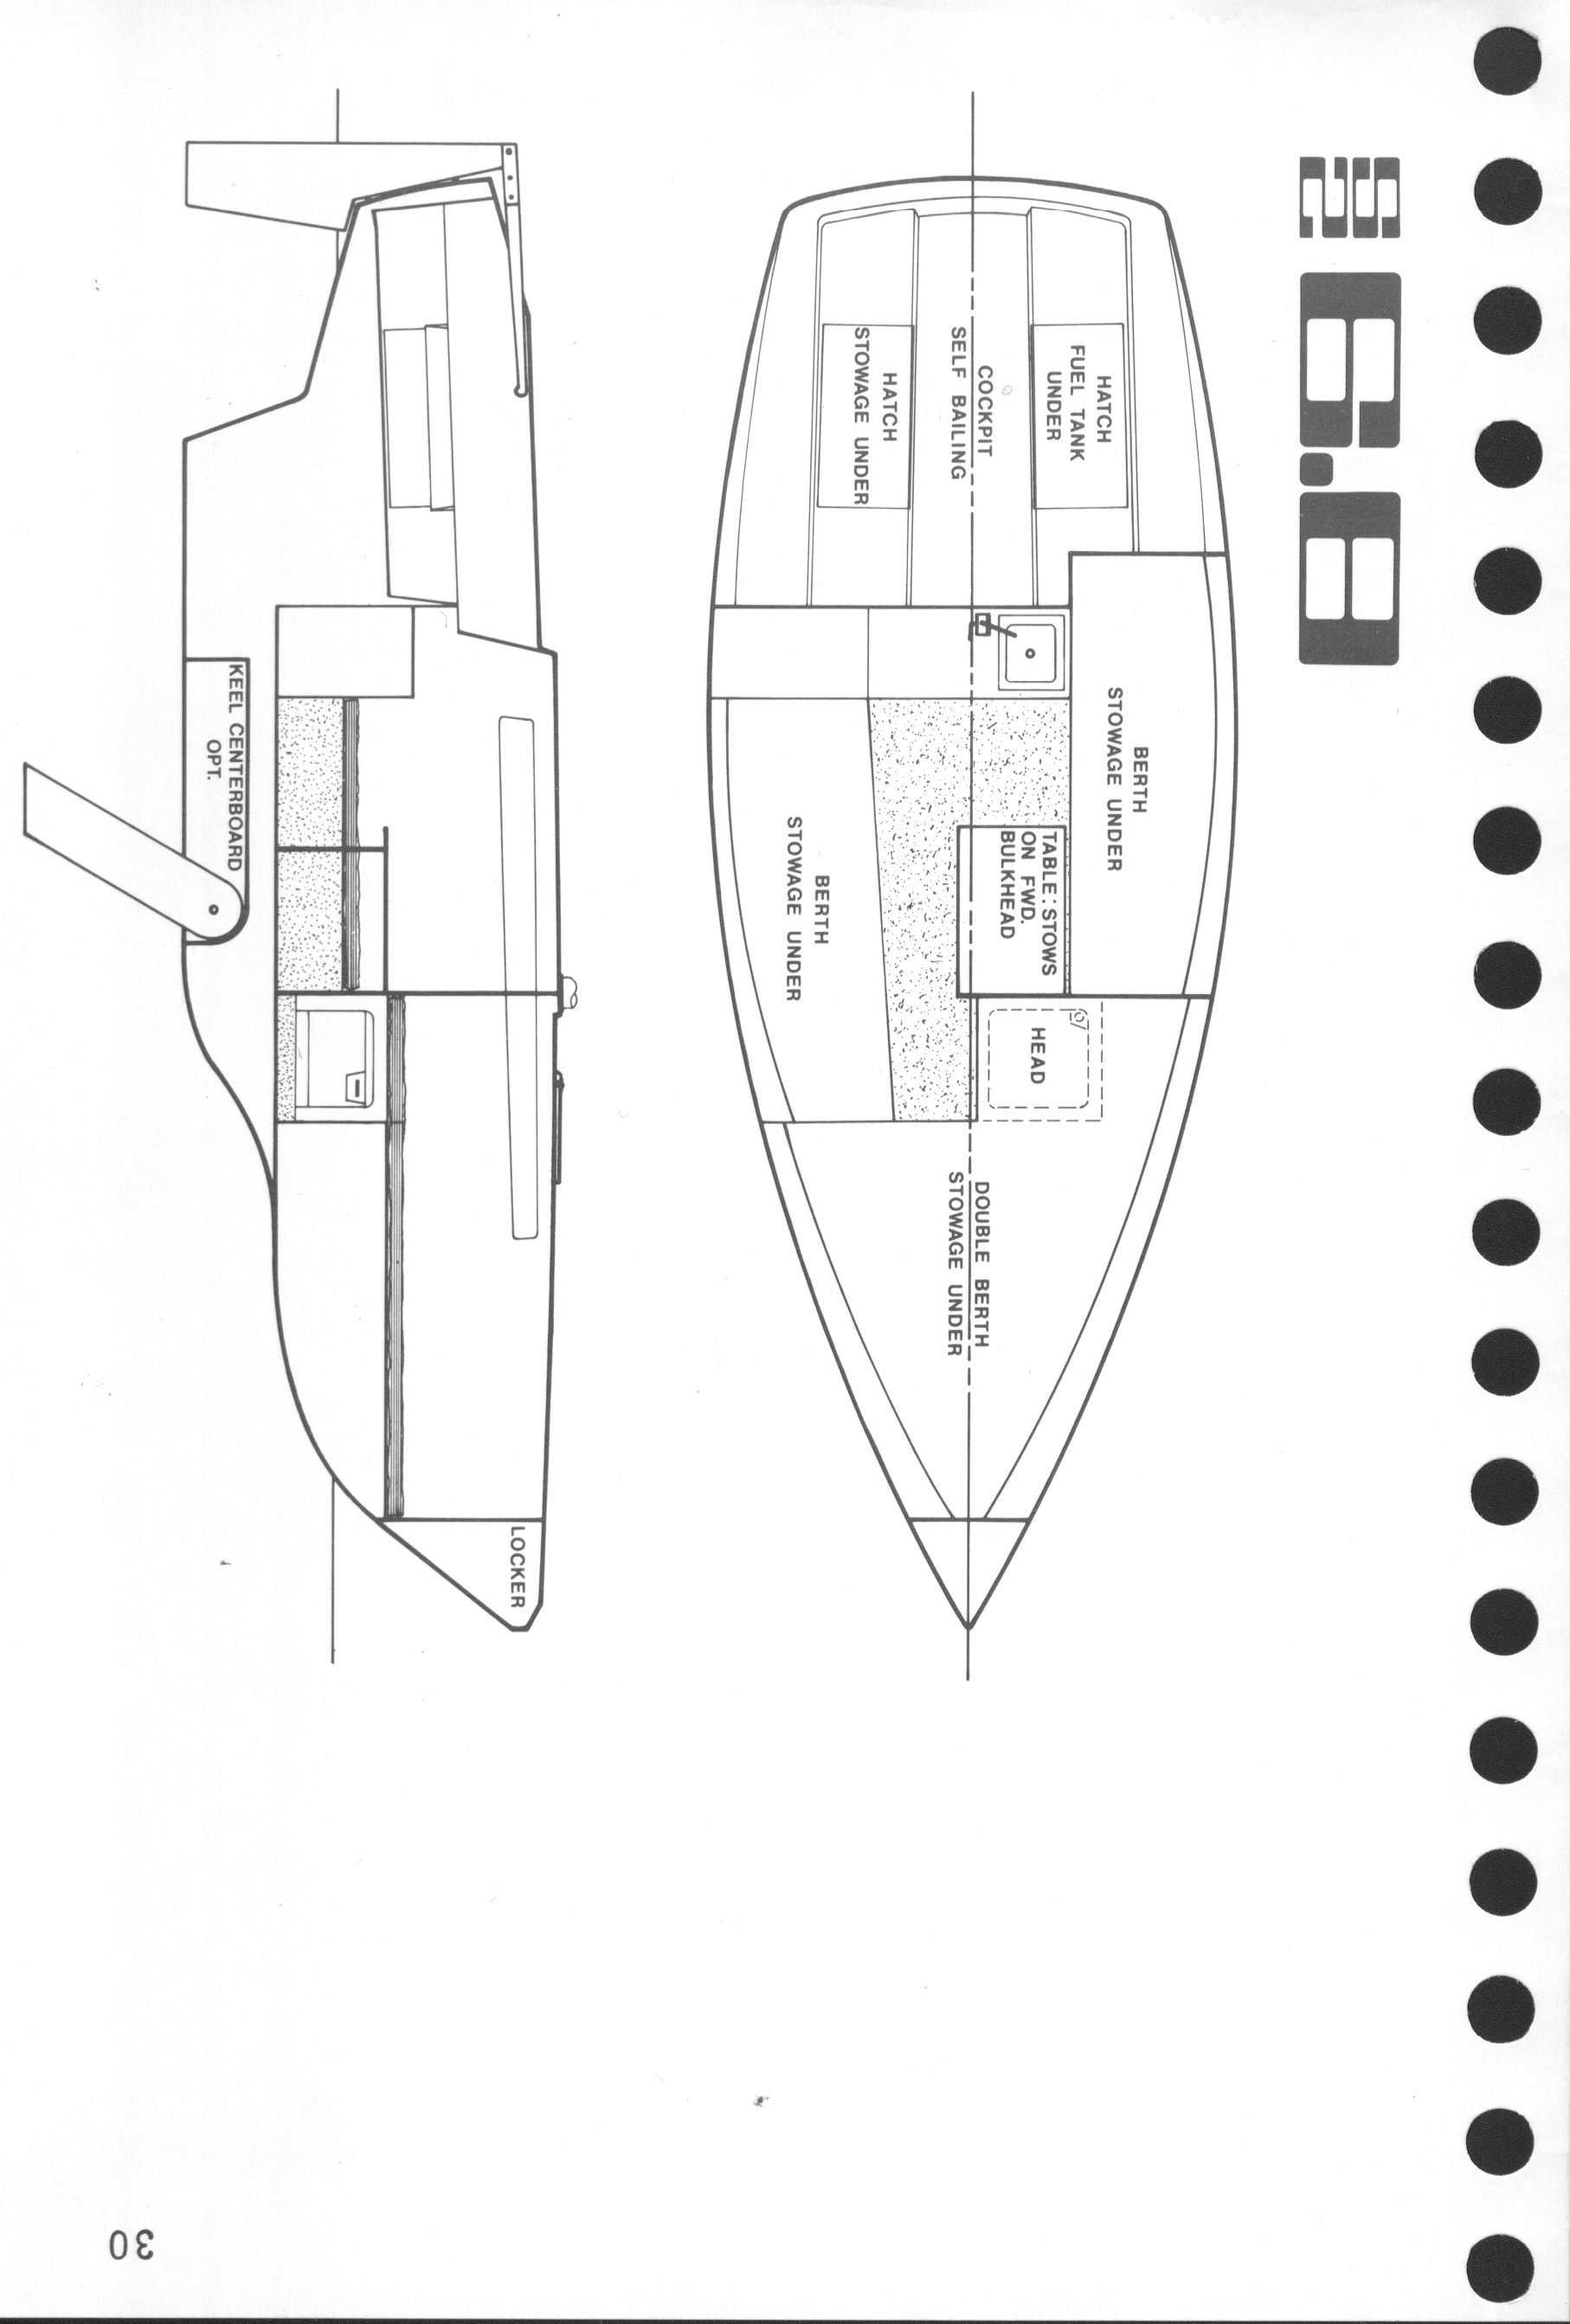 For Catalina 30 Plumbing Diagram